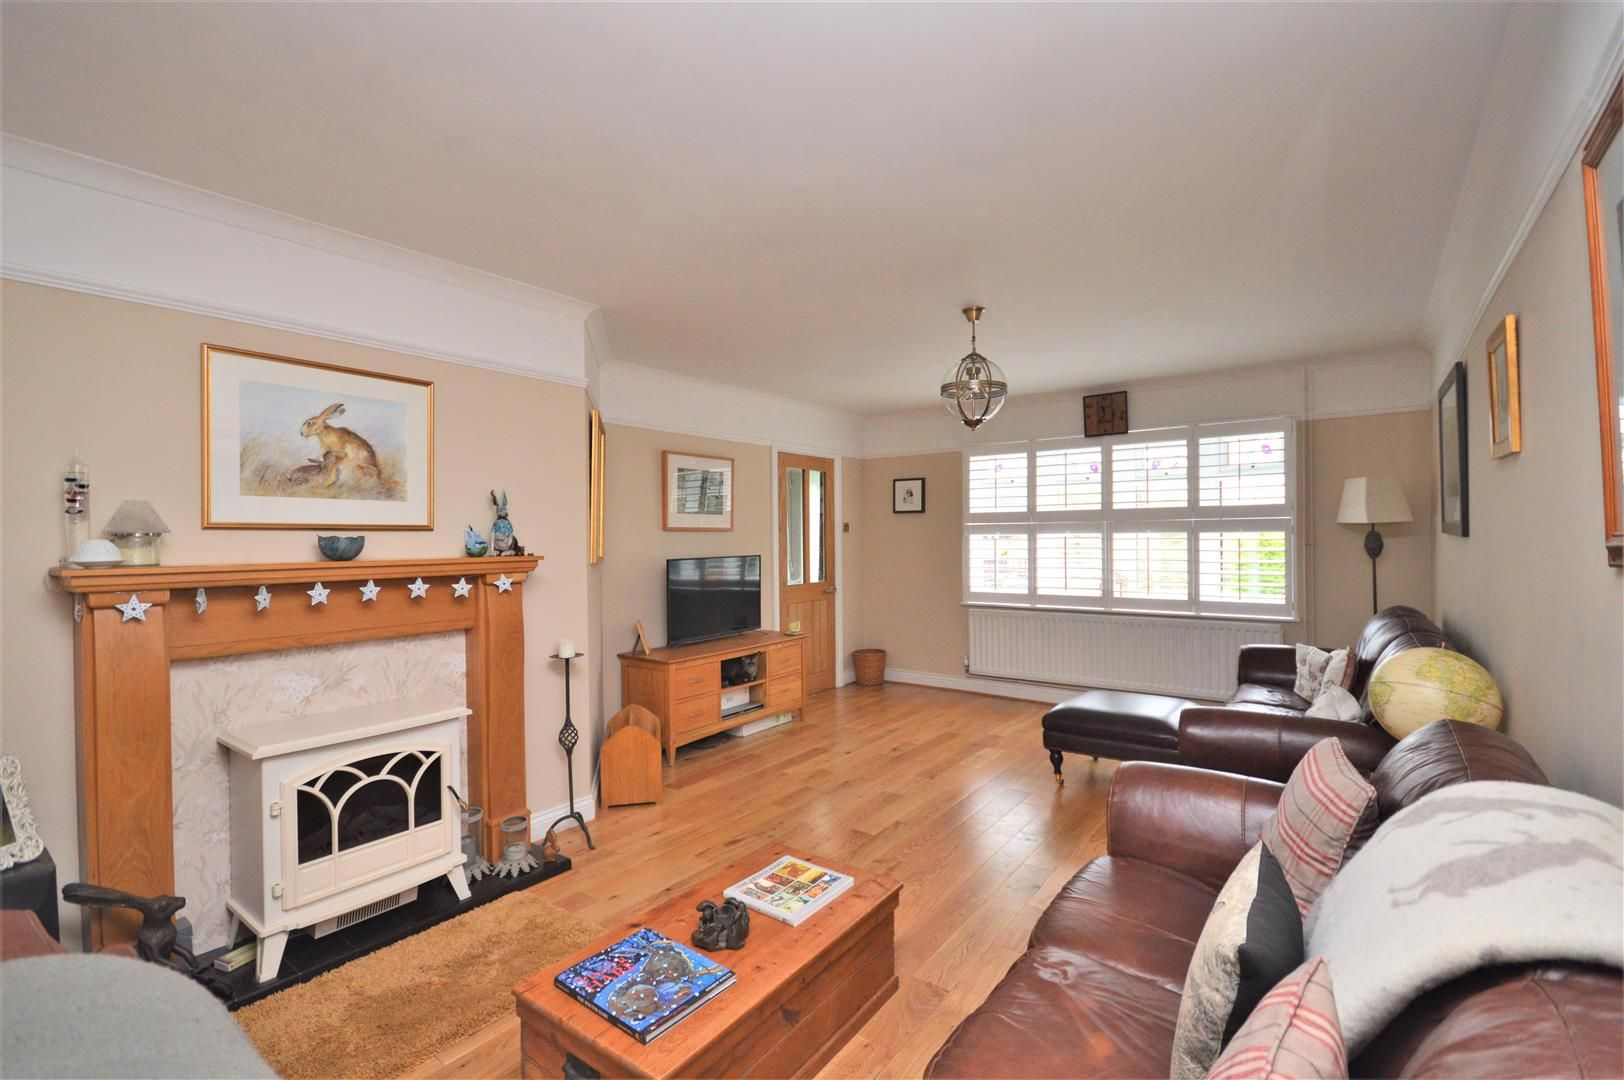 4 bed detached for sale in Kings Caple  - Property Image 1